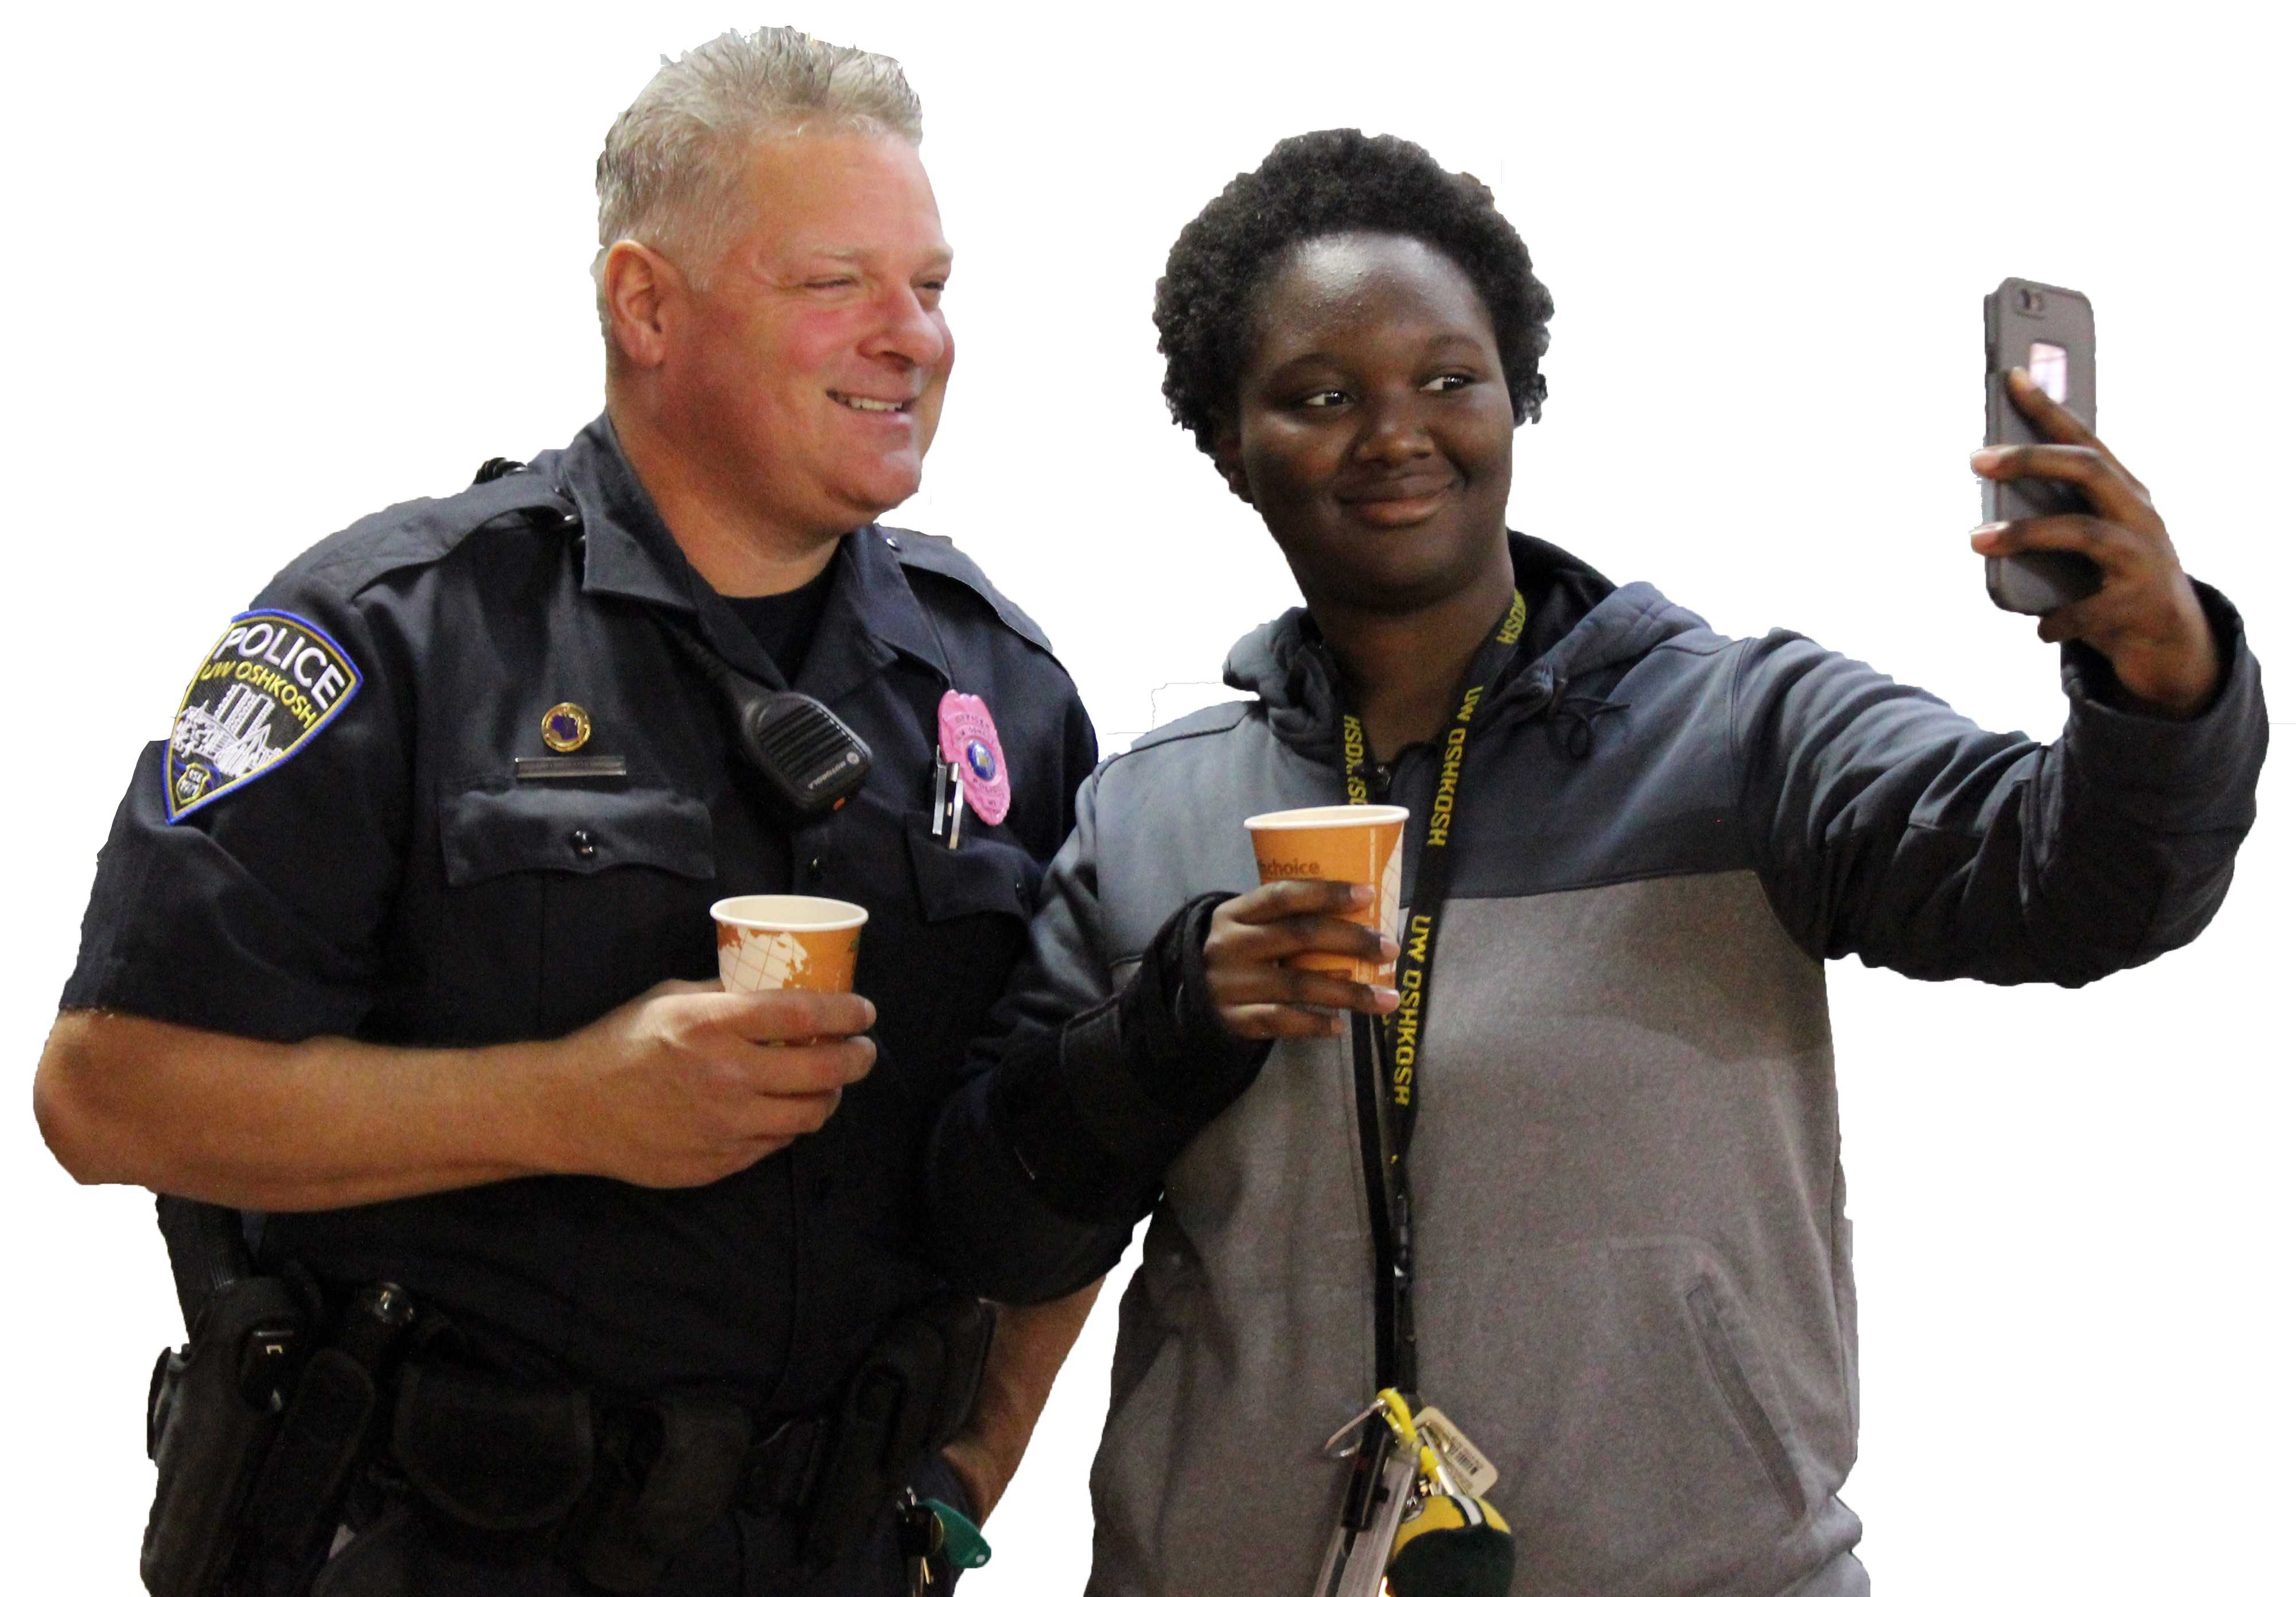 Students, cops unite for coffee break